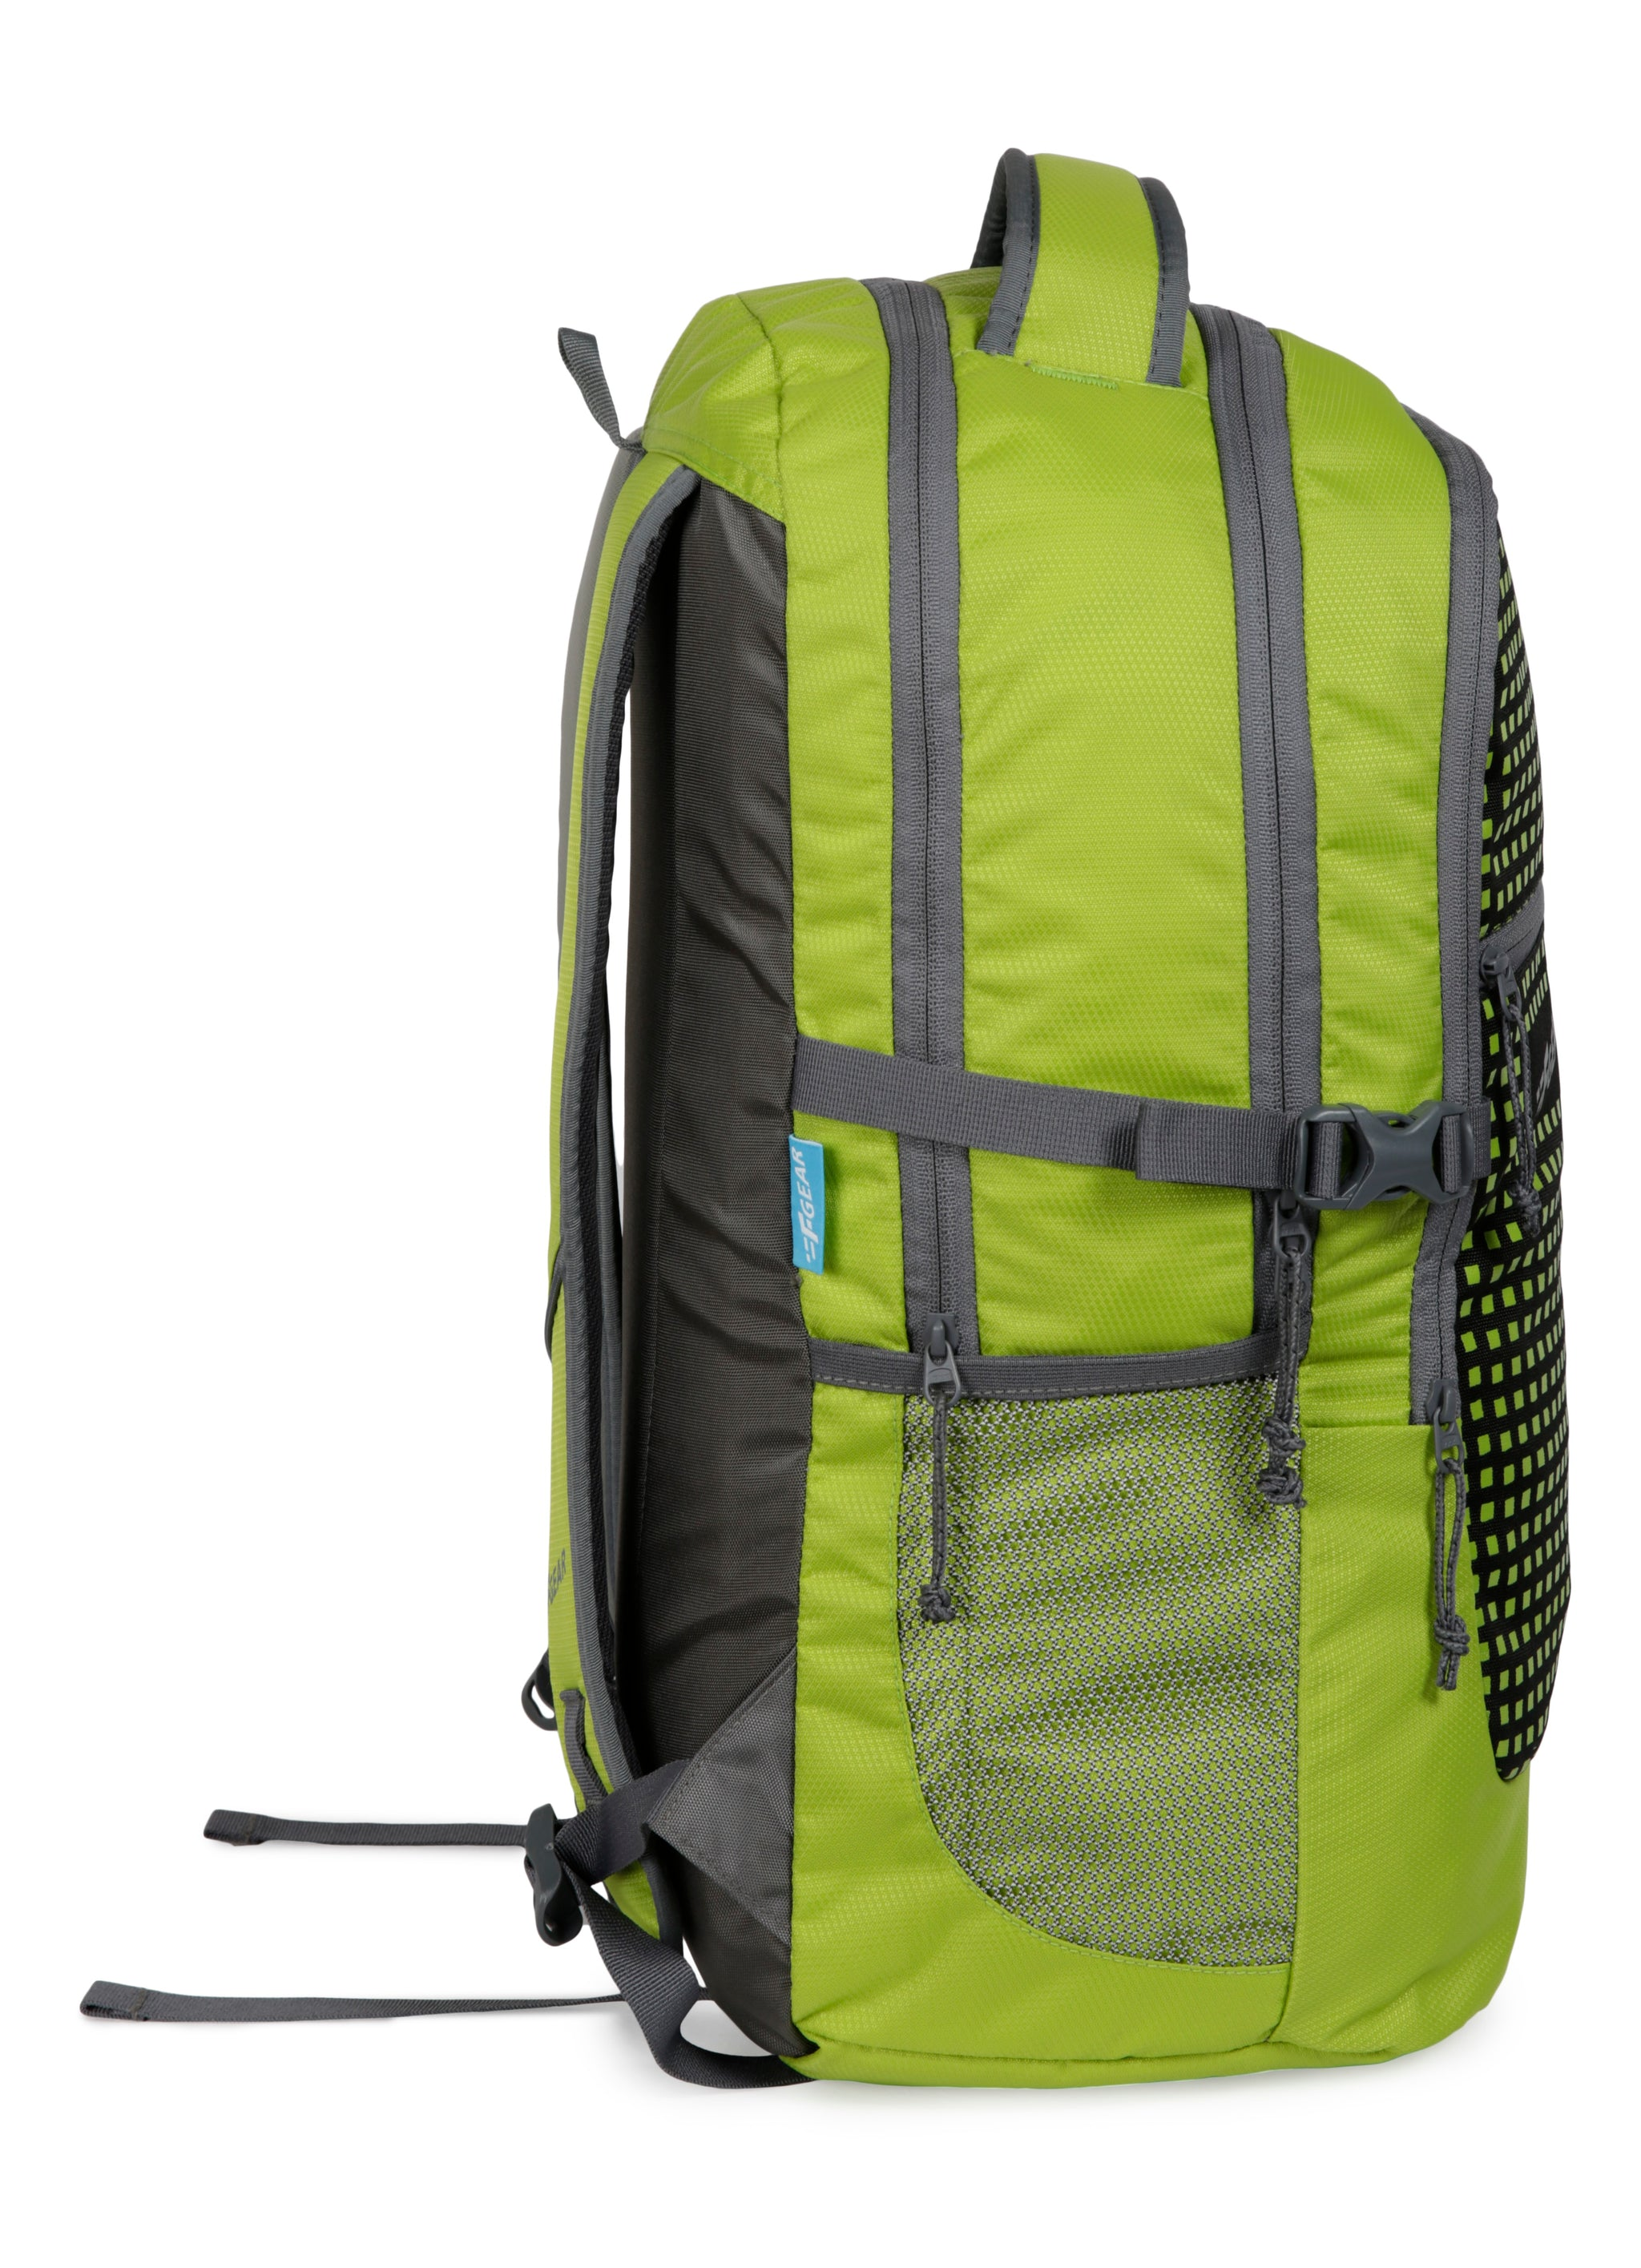 F Gear Blow 32 Ltrs Green Laptop Backpack with Rain Cover (3206)